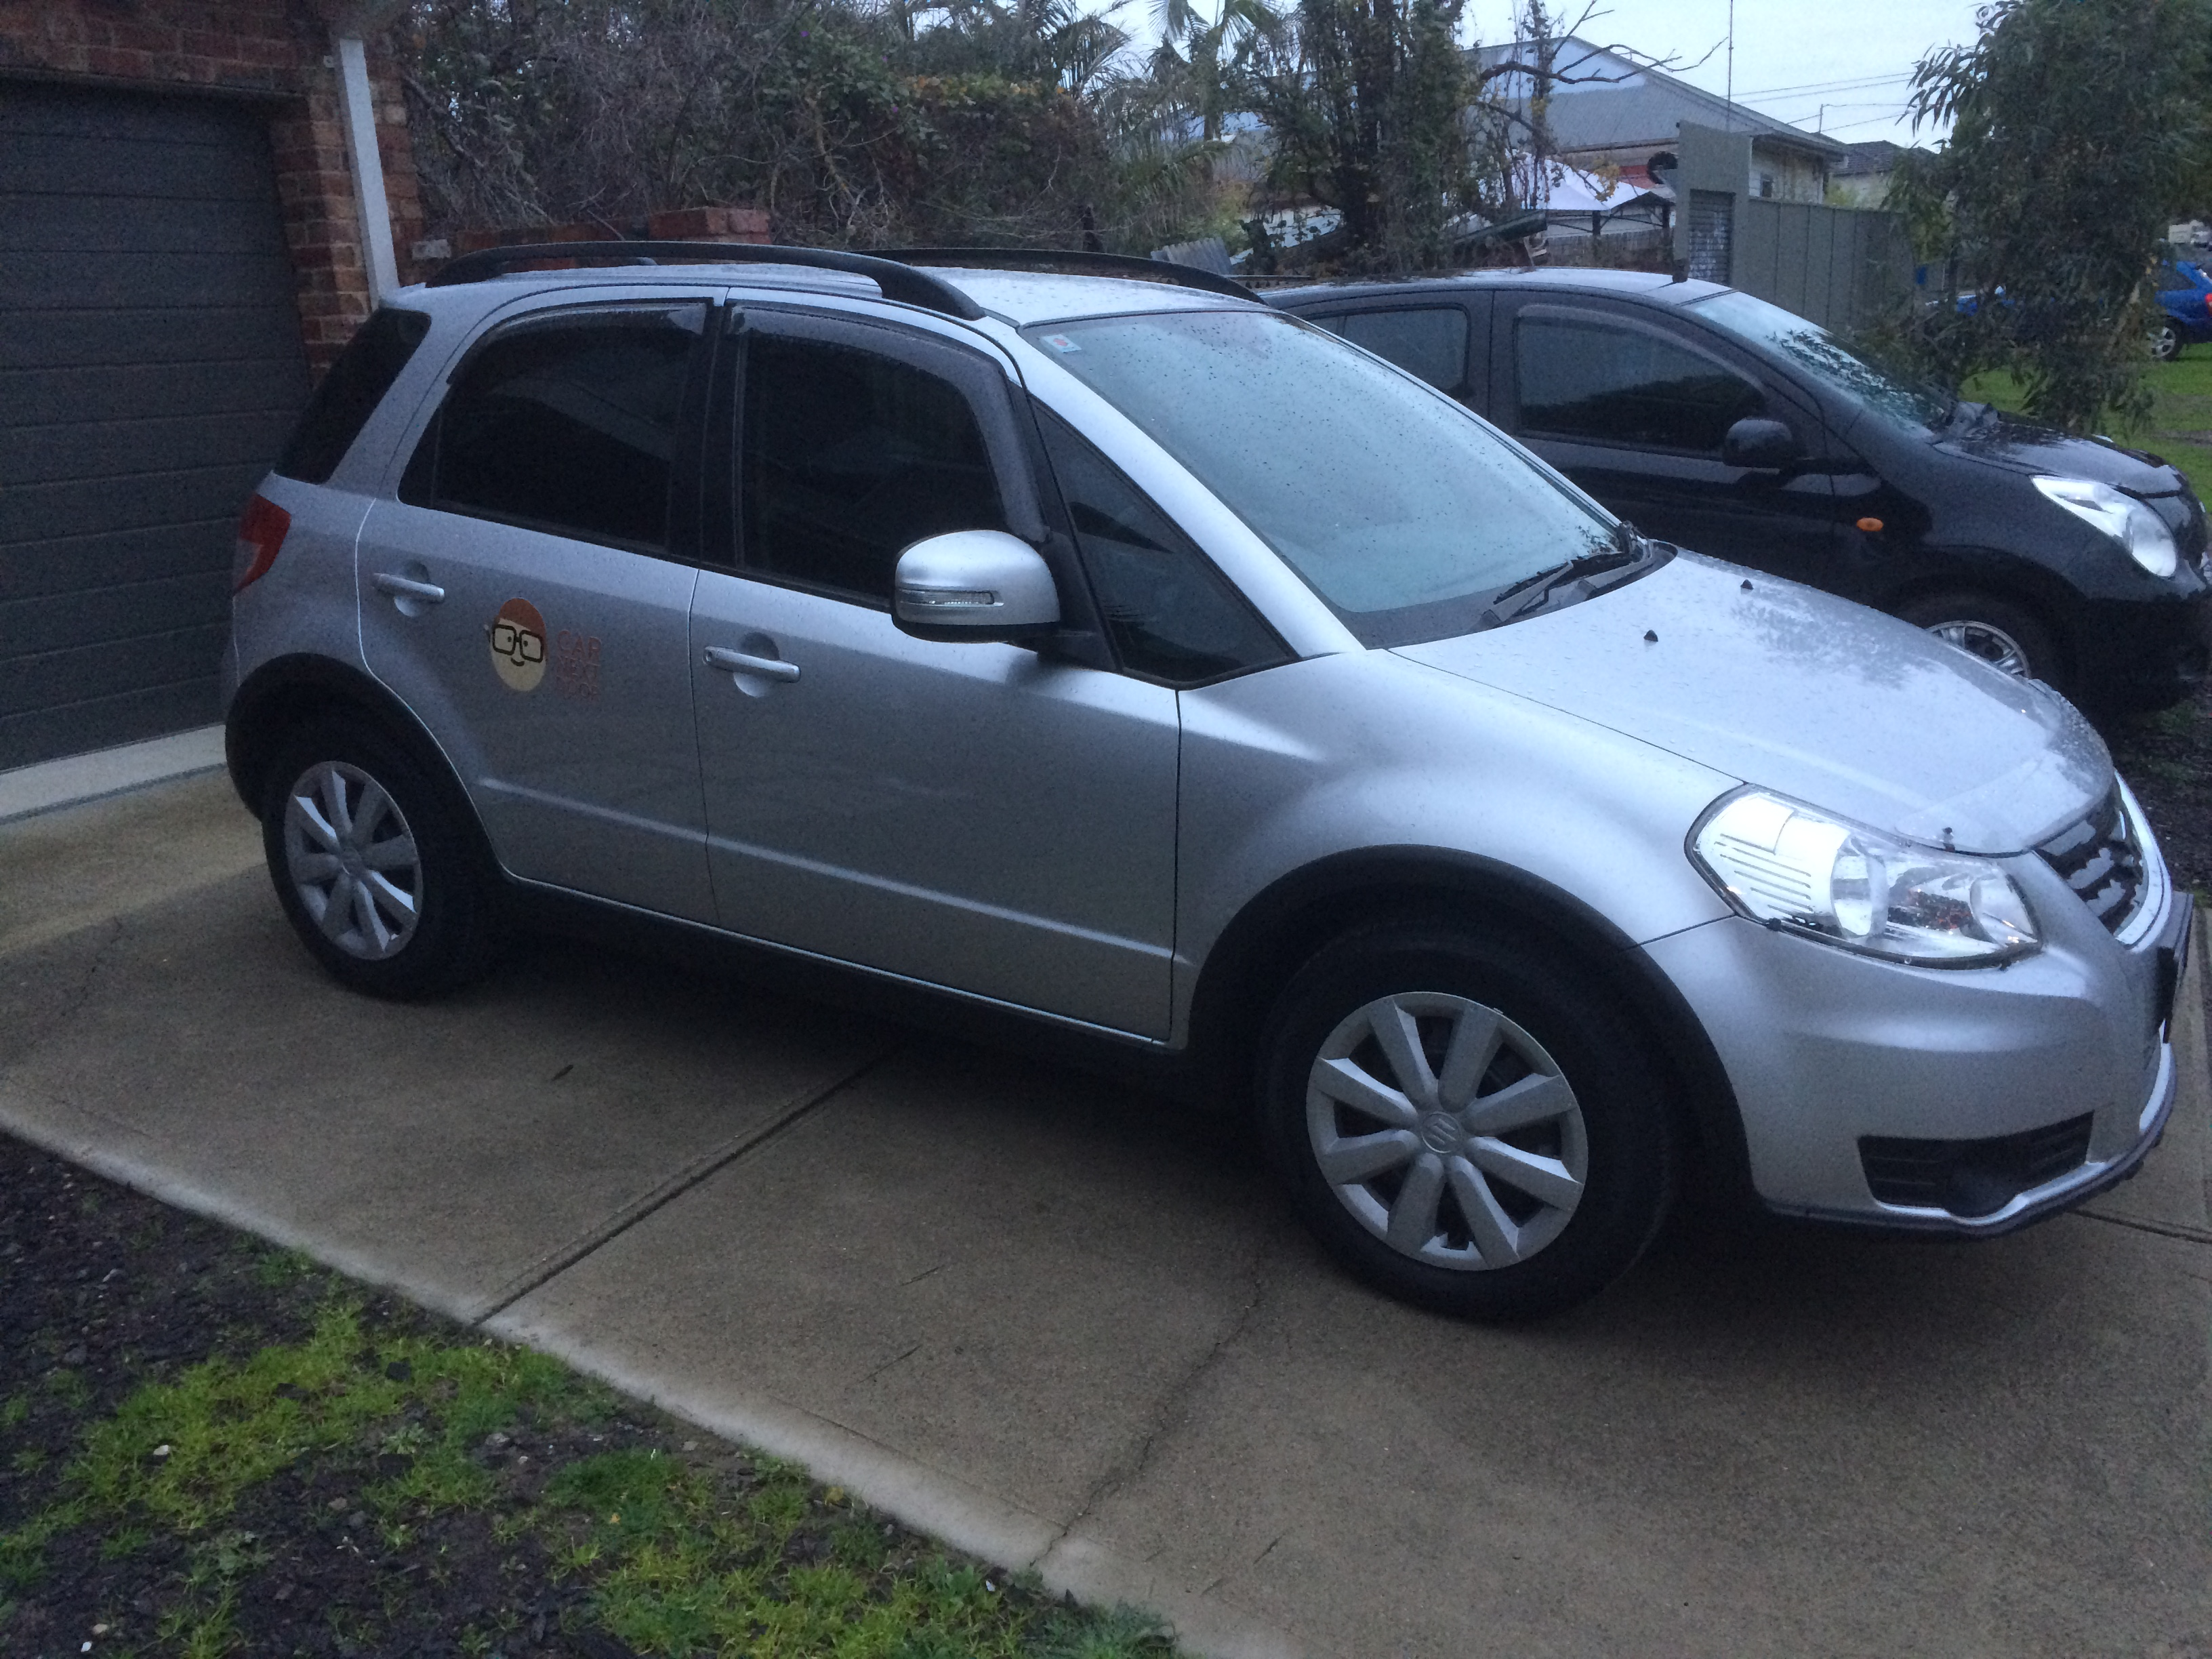 Rent Yang's 2014 Suzuki SX4 by the hour or day in Maidstone, VIC